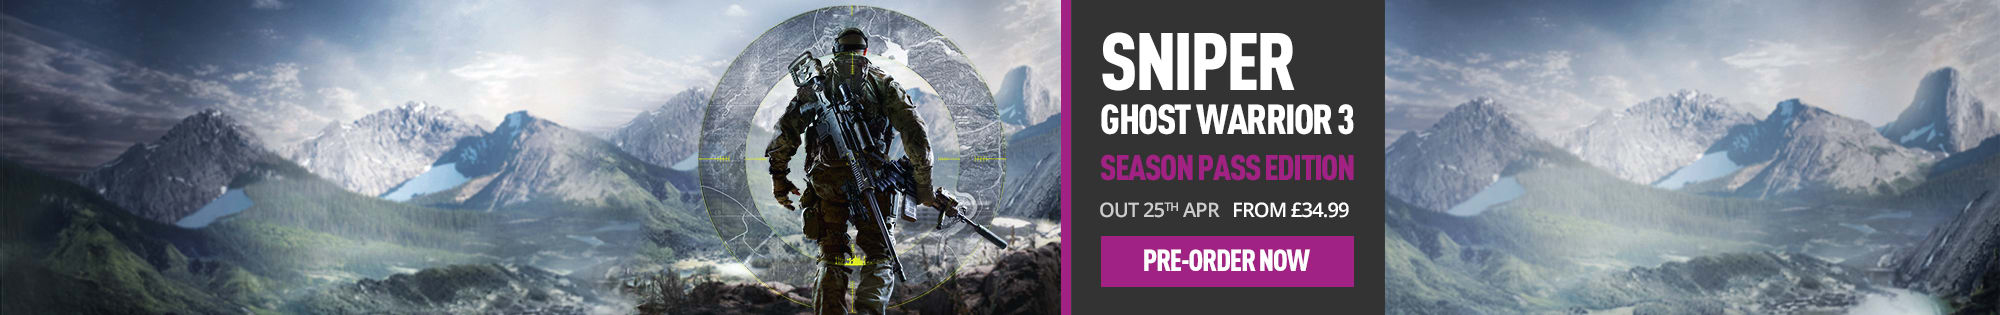 Sniper Ghost Warrior 3 for PlayStation 4, Xbox One and PC